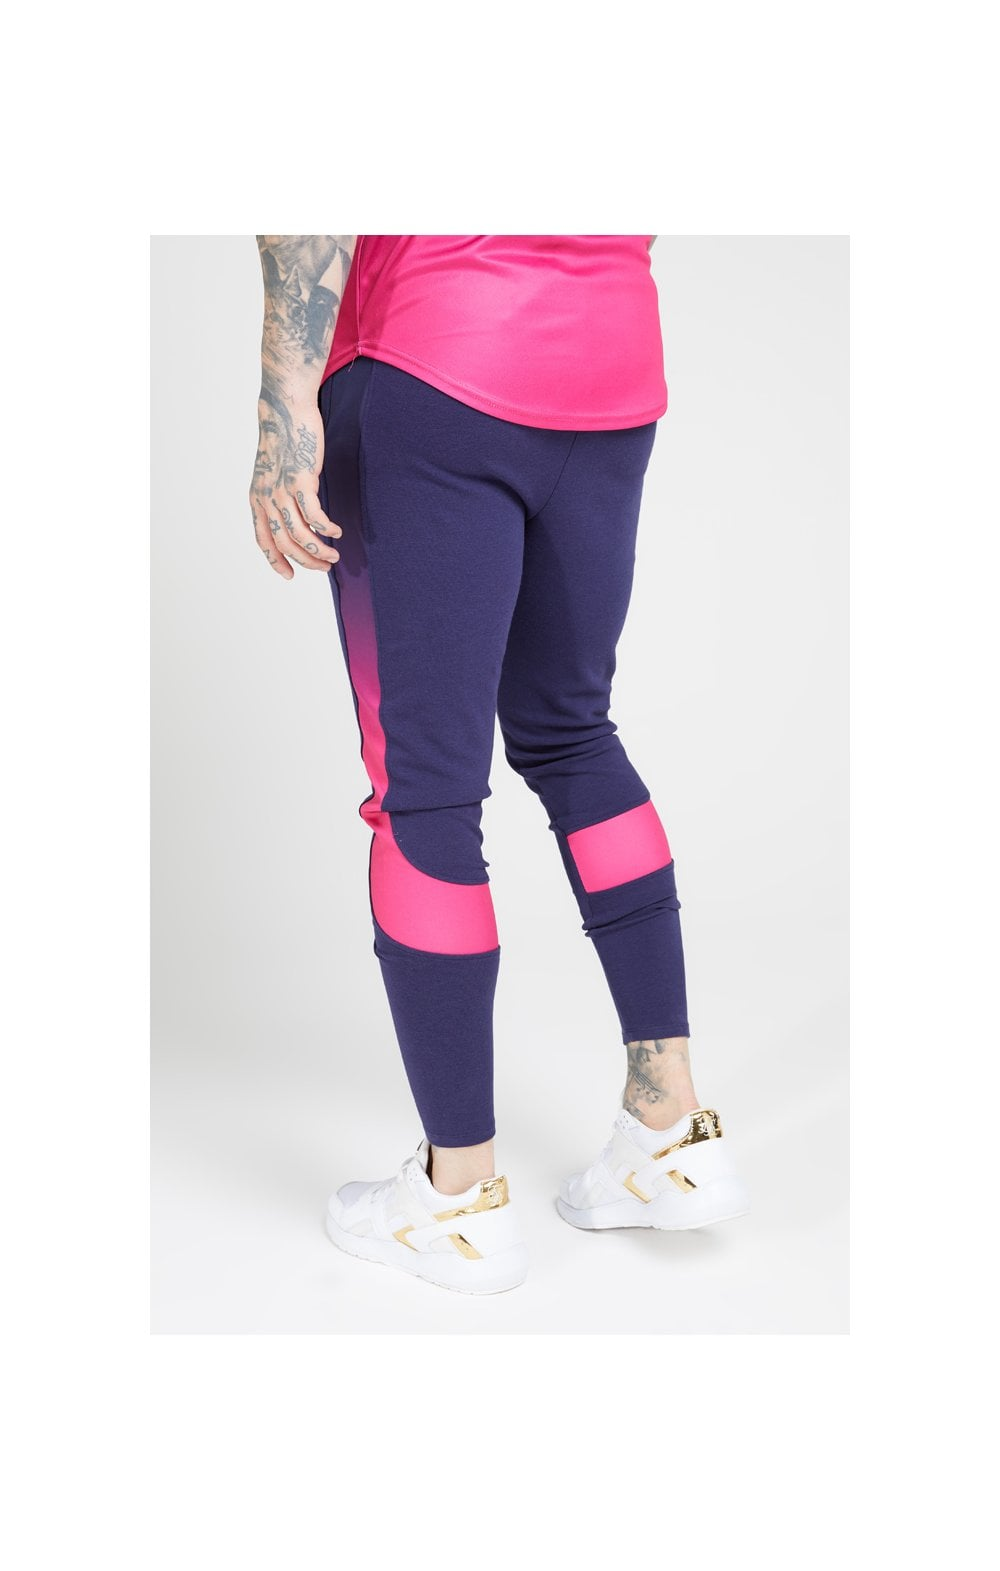 Load image into Gallery viewer, SikSilk Athlete Tech Fade Track Pants – Navy & Neon Fade (2)